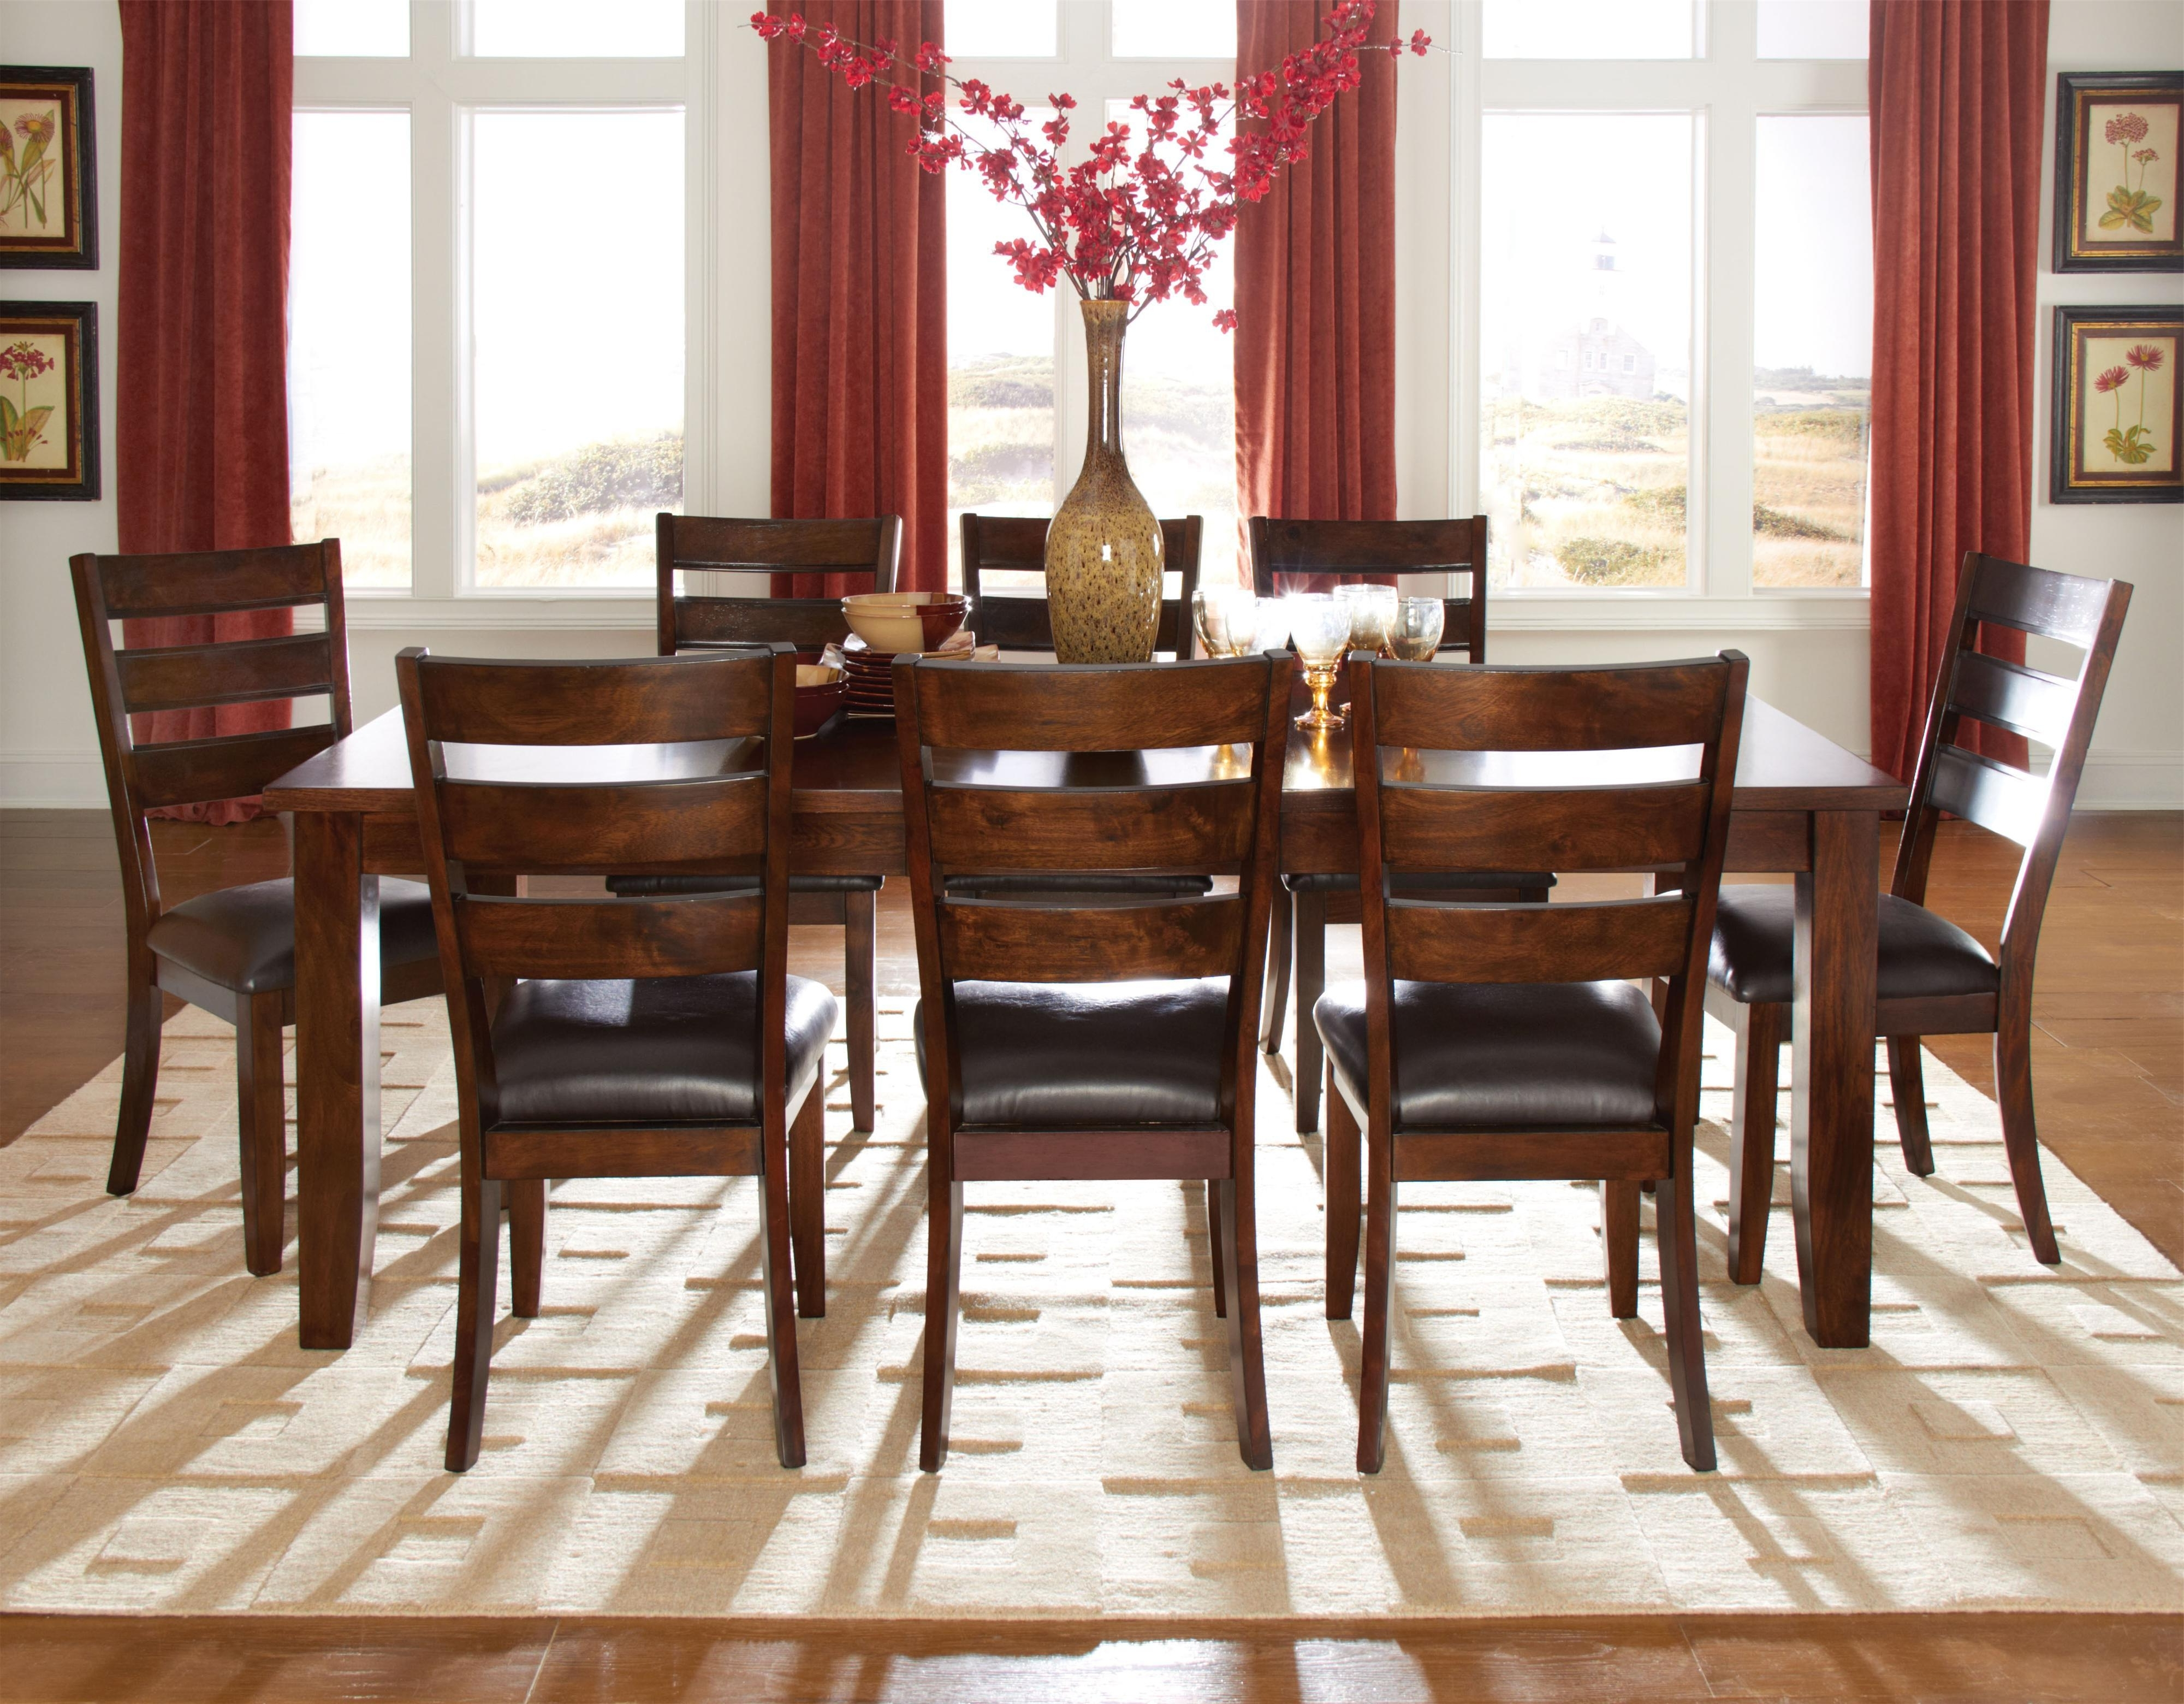 Famous Cheery Caira Piece Extension Set Back Chairs Caira Piece Extension Regarding Walden 9 Piece Extension Dining Sets (View 5 of 25)